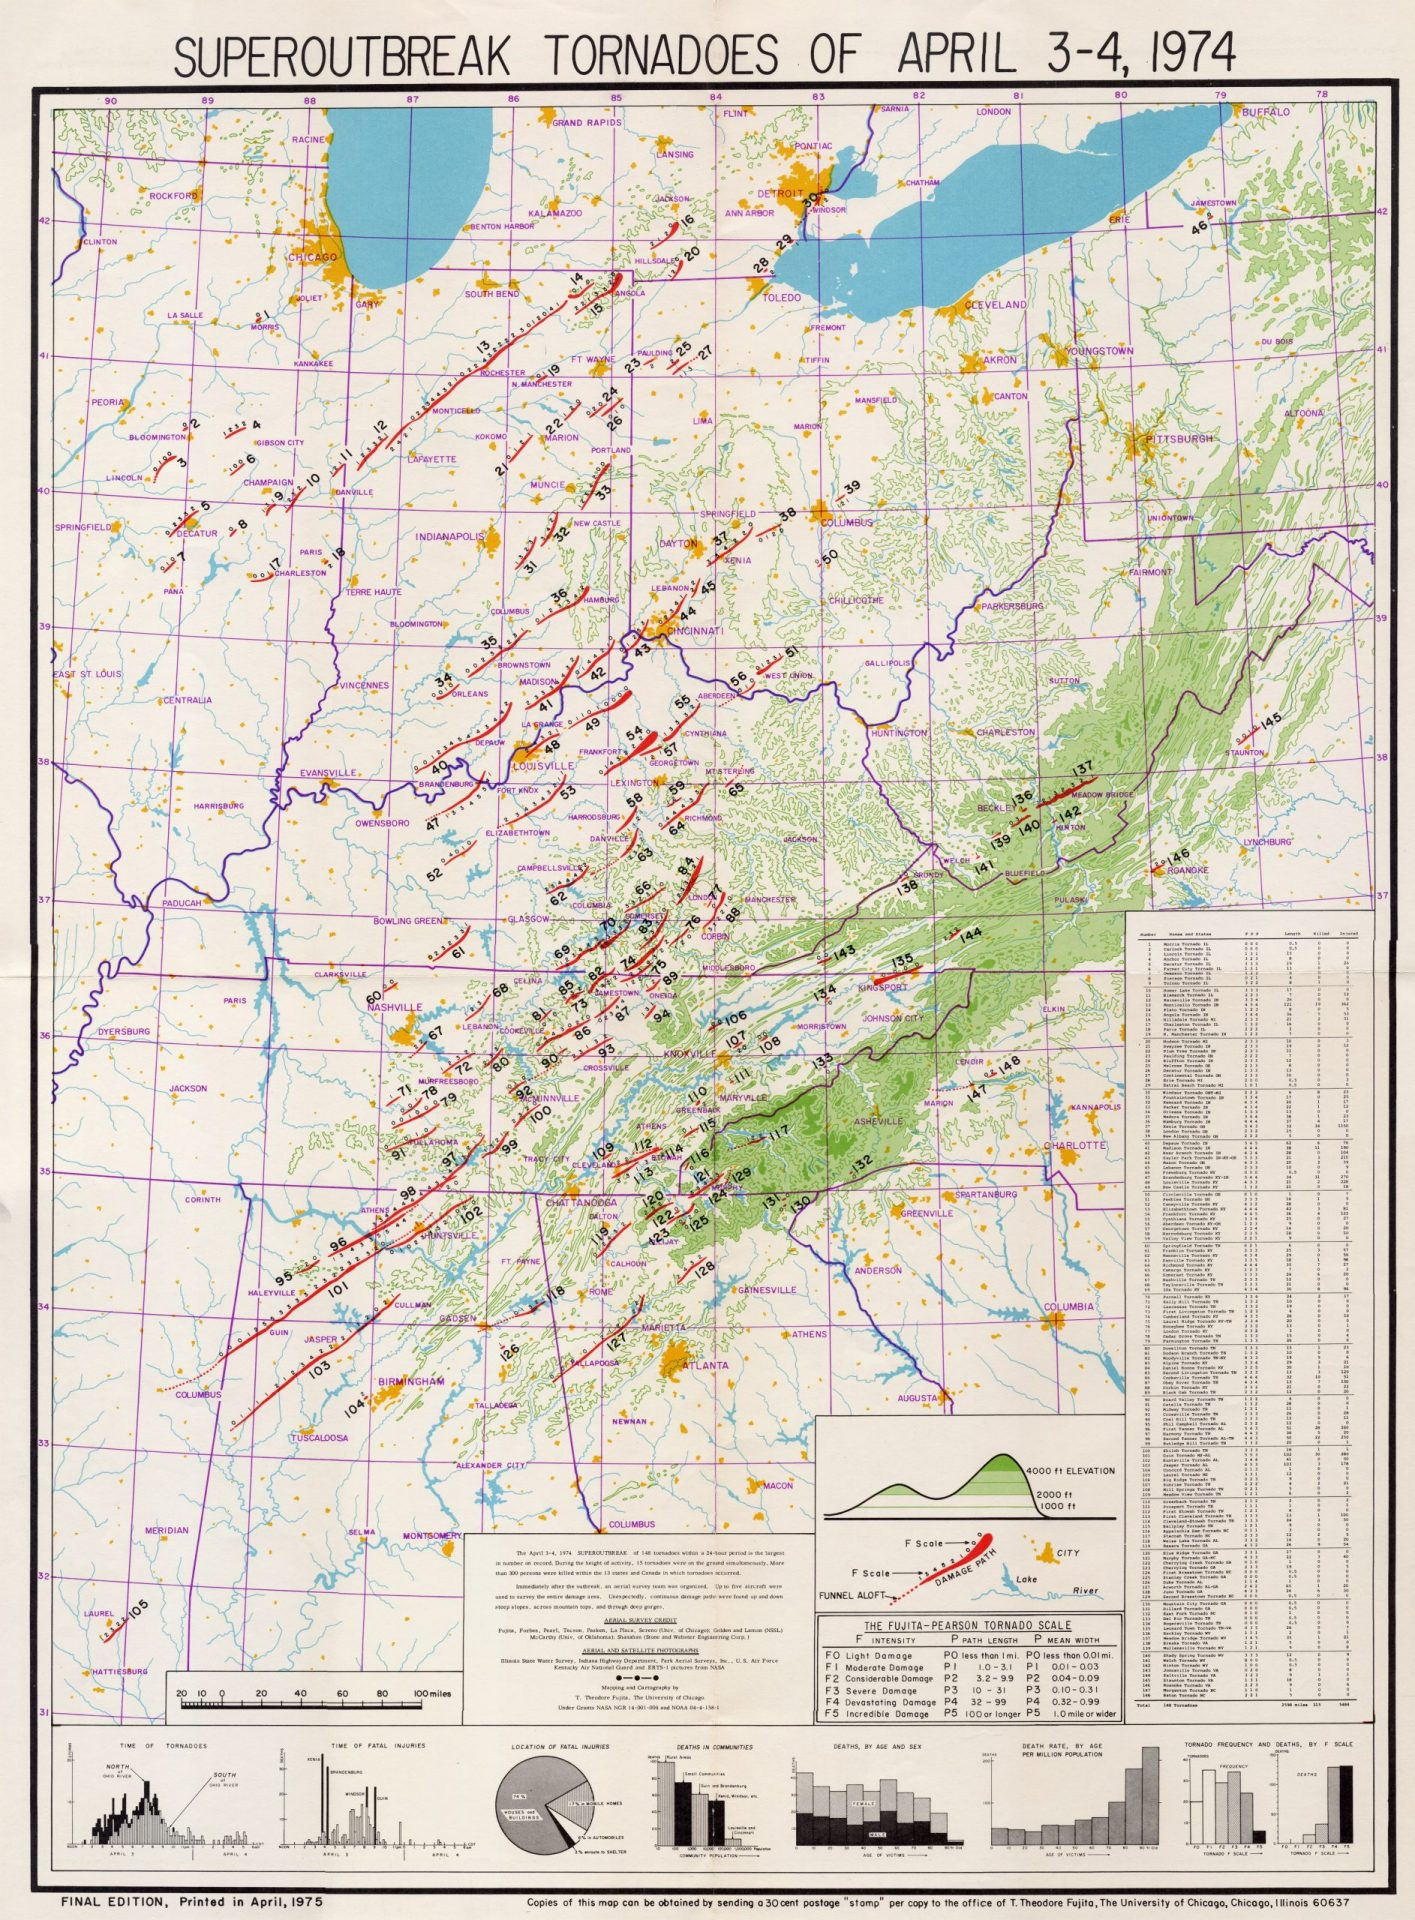 The April 3-4, 1974 Super Outbreak – Overview